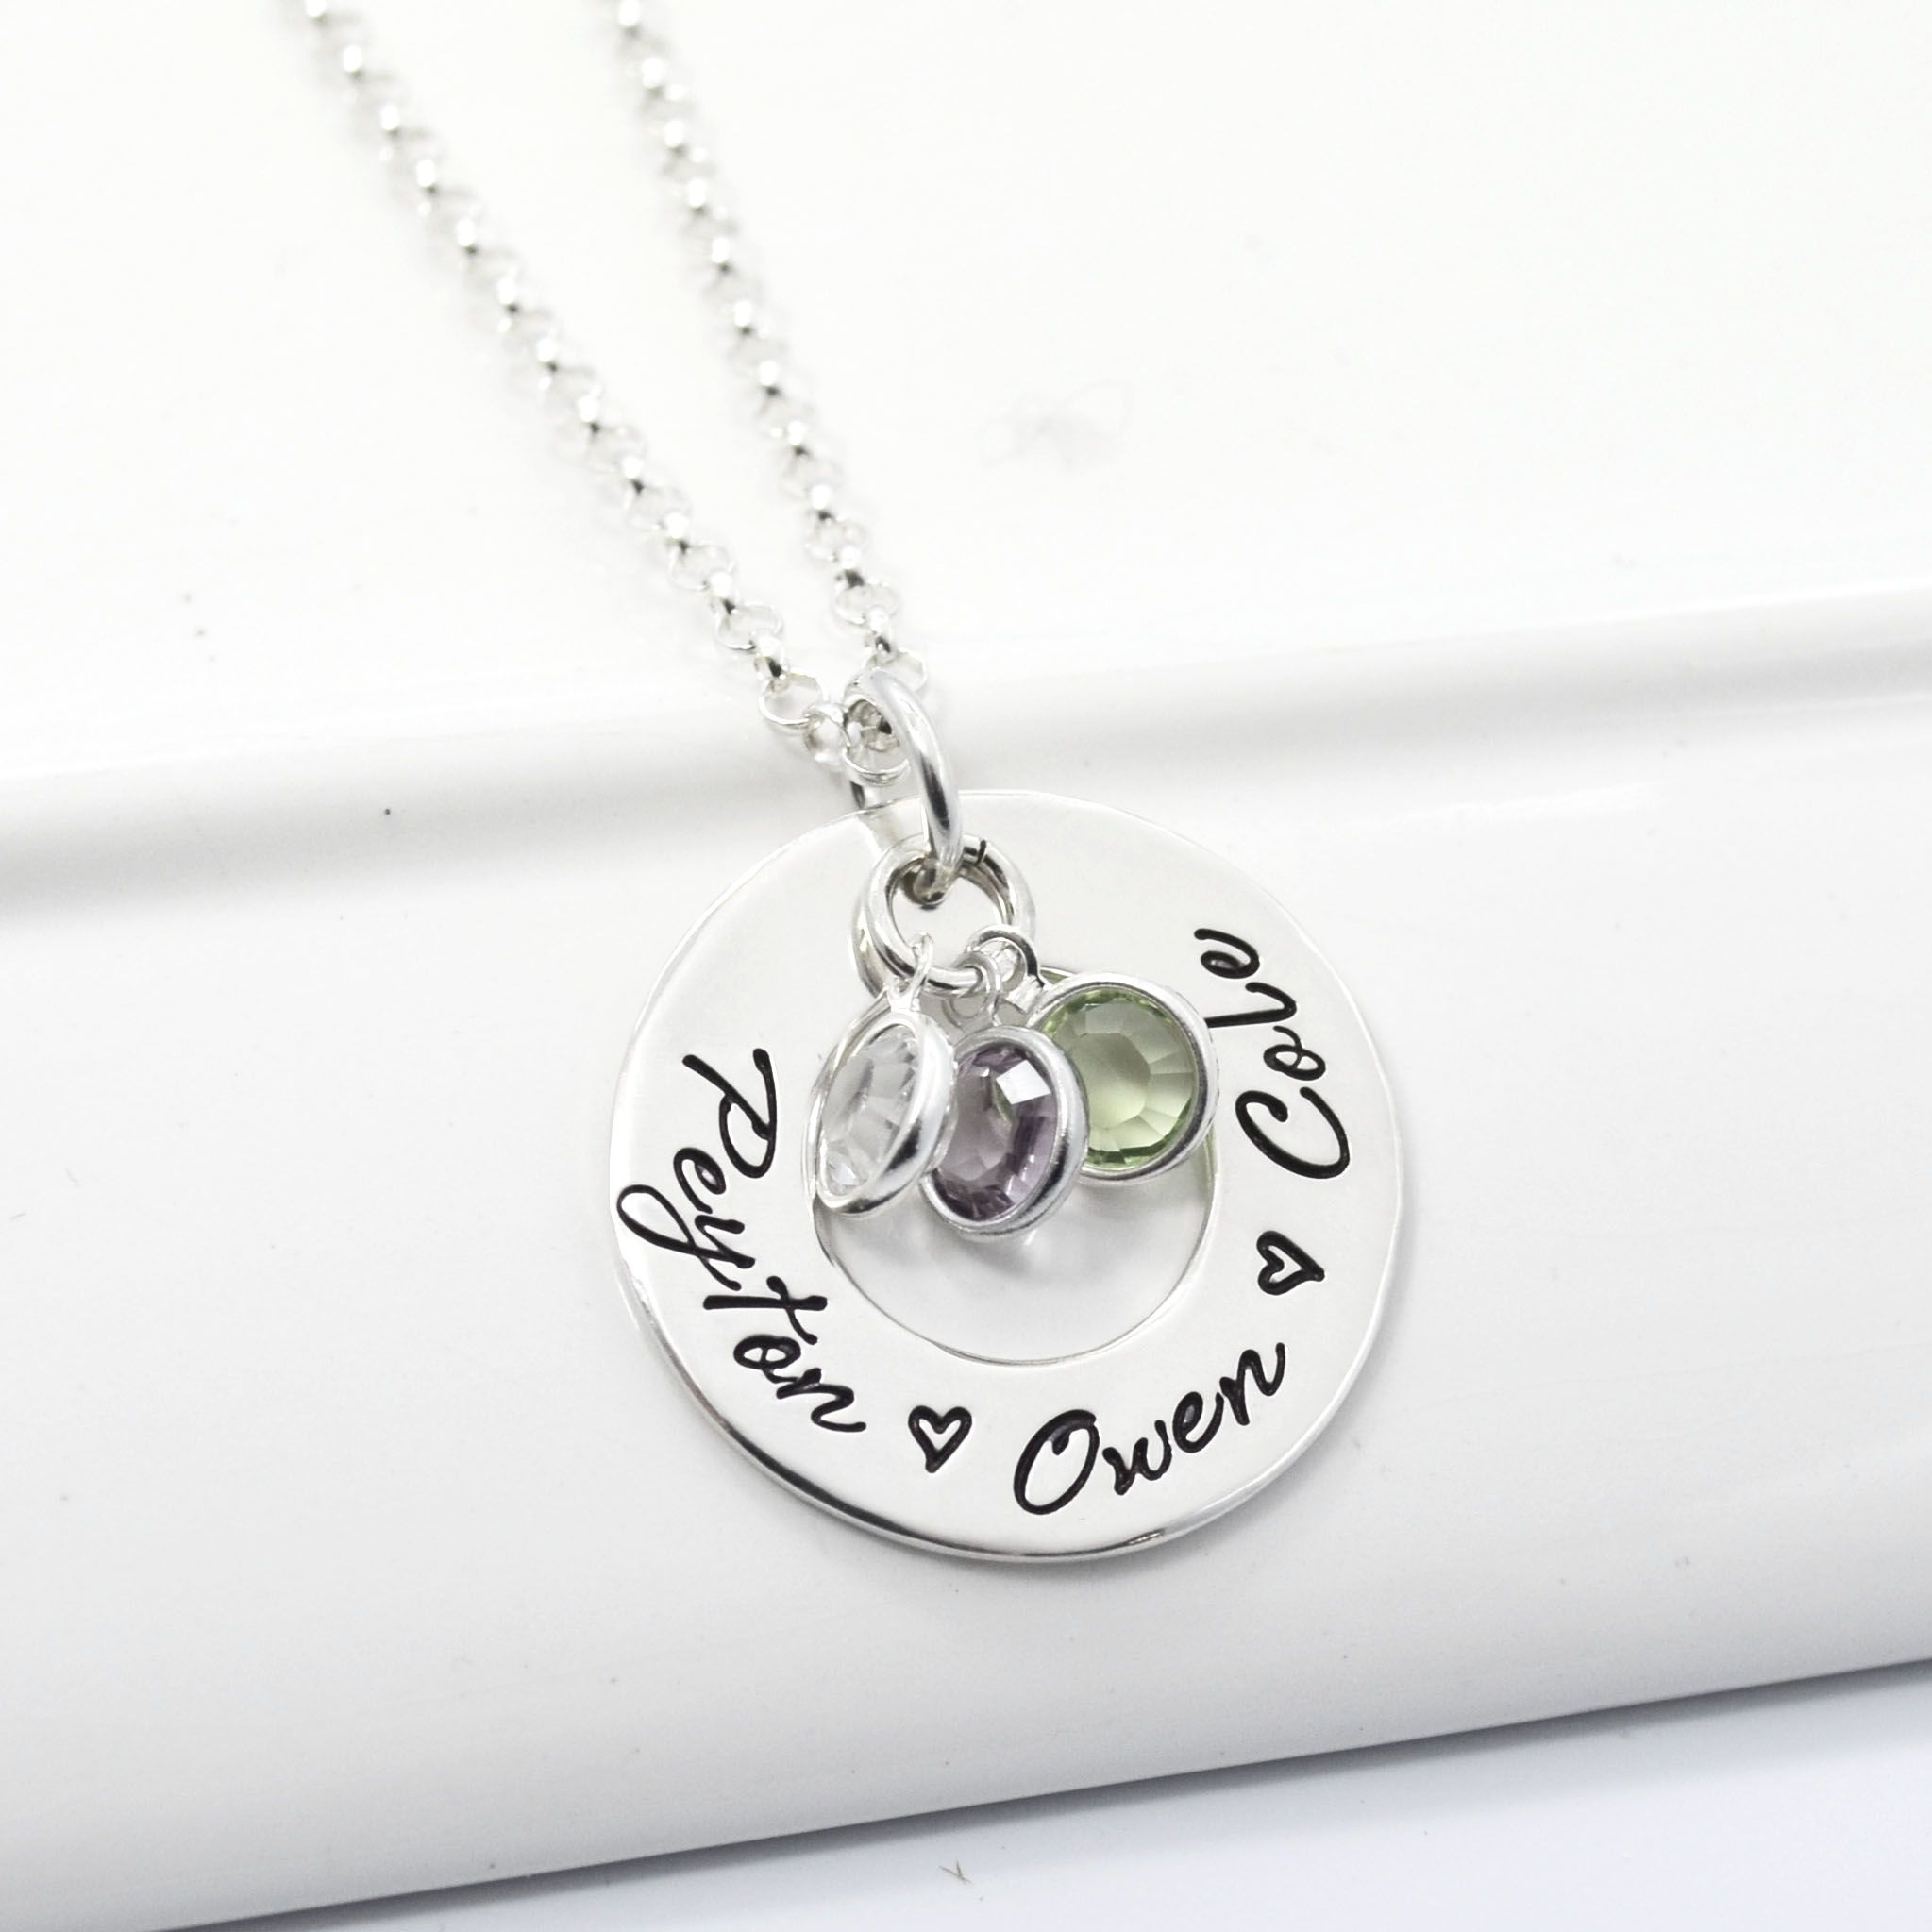 childs gift personalized mothers pendant custom birthstone heart for mother hand dainty child necklace shop s name mom stamped jewelry